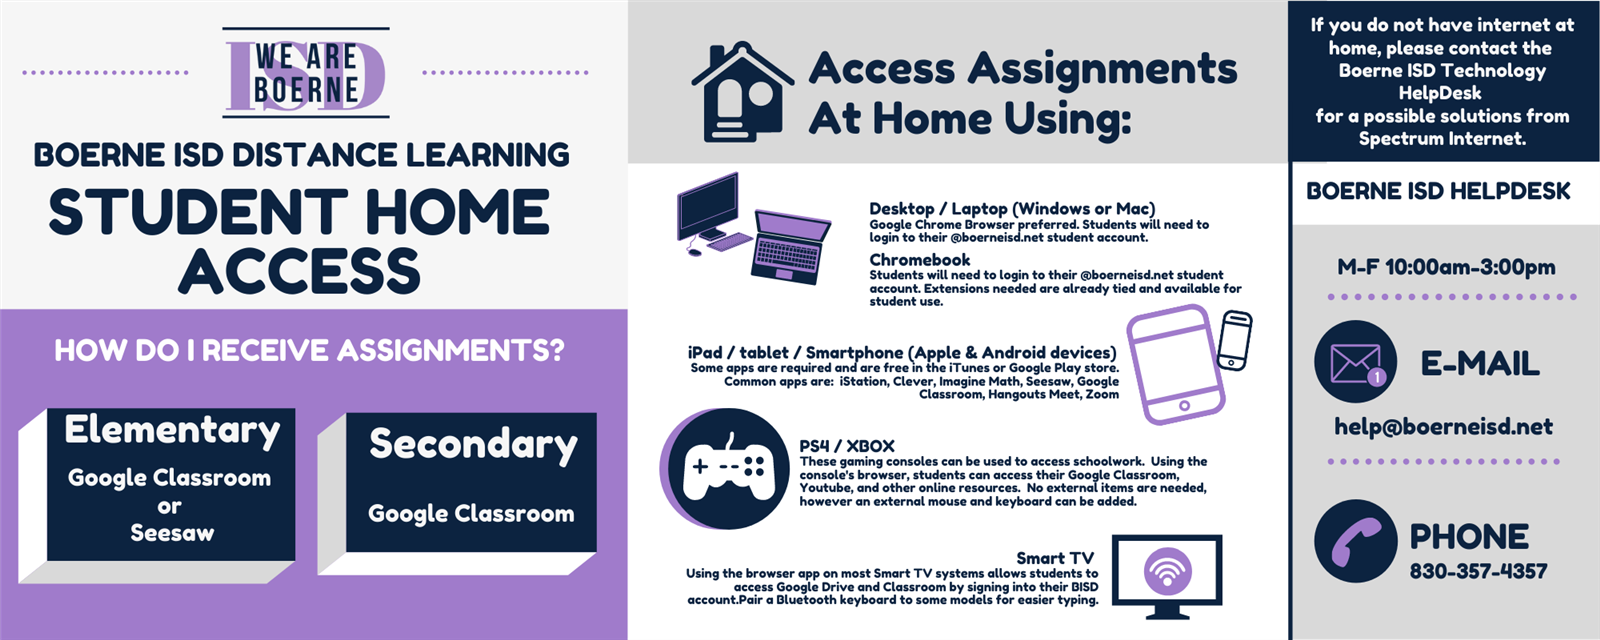 Student Home Access